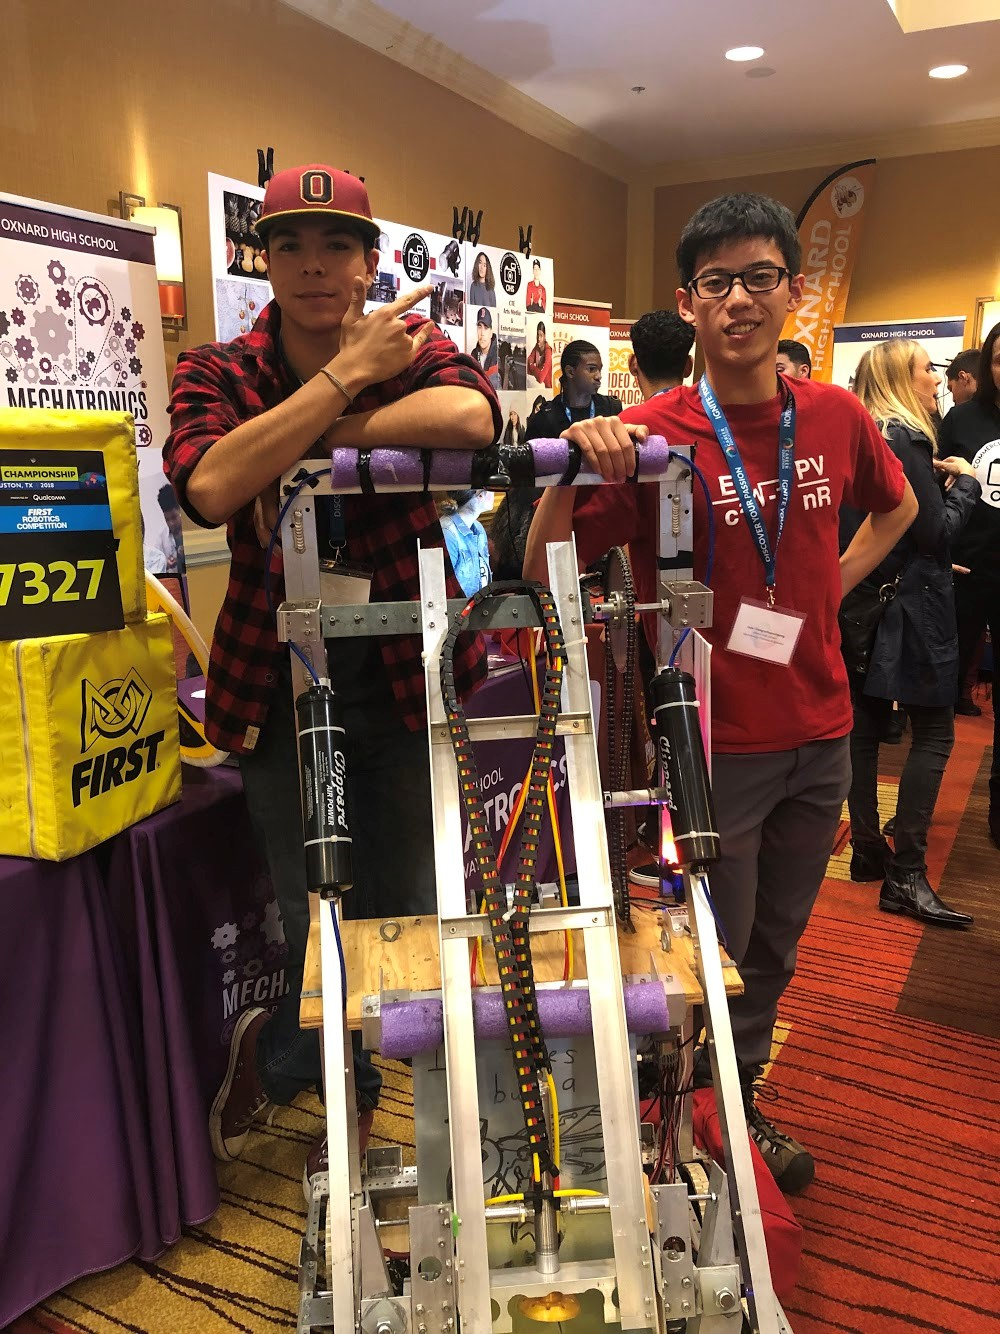 David Pulido, 2019 Edison Scholar, participates in a robotics competition.